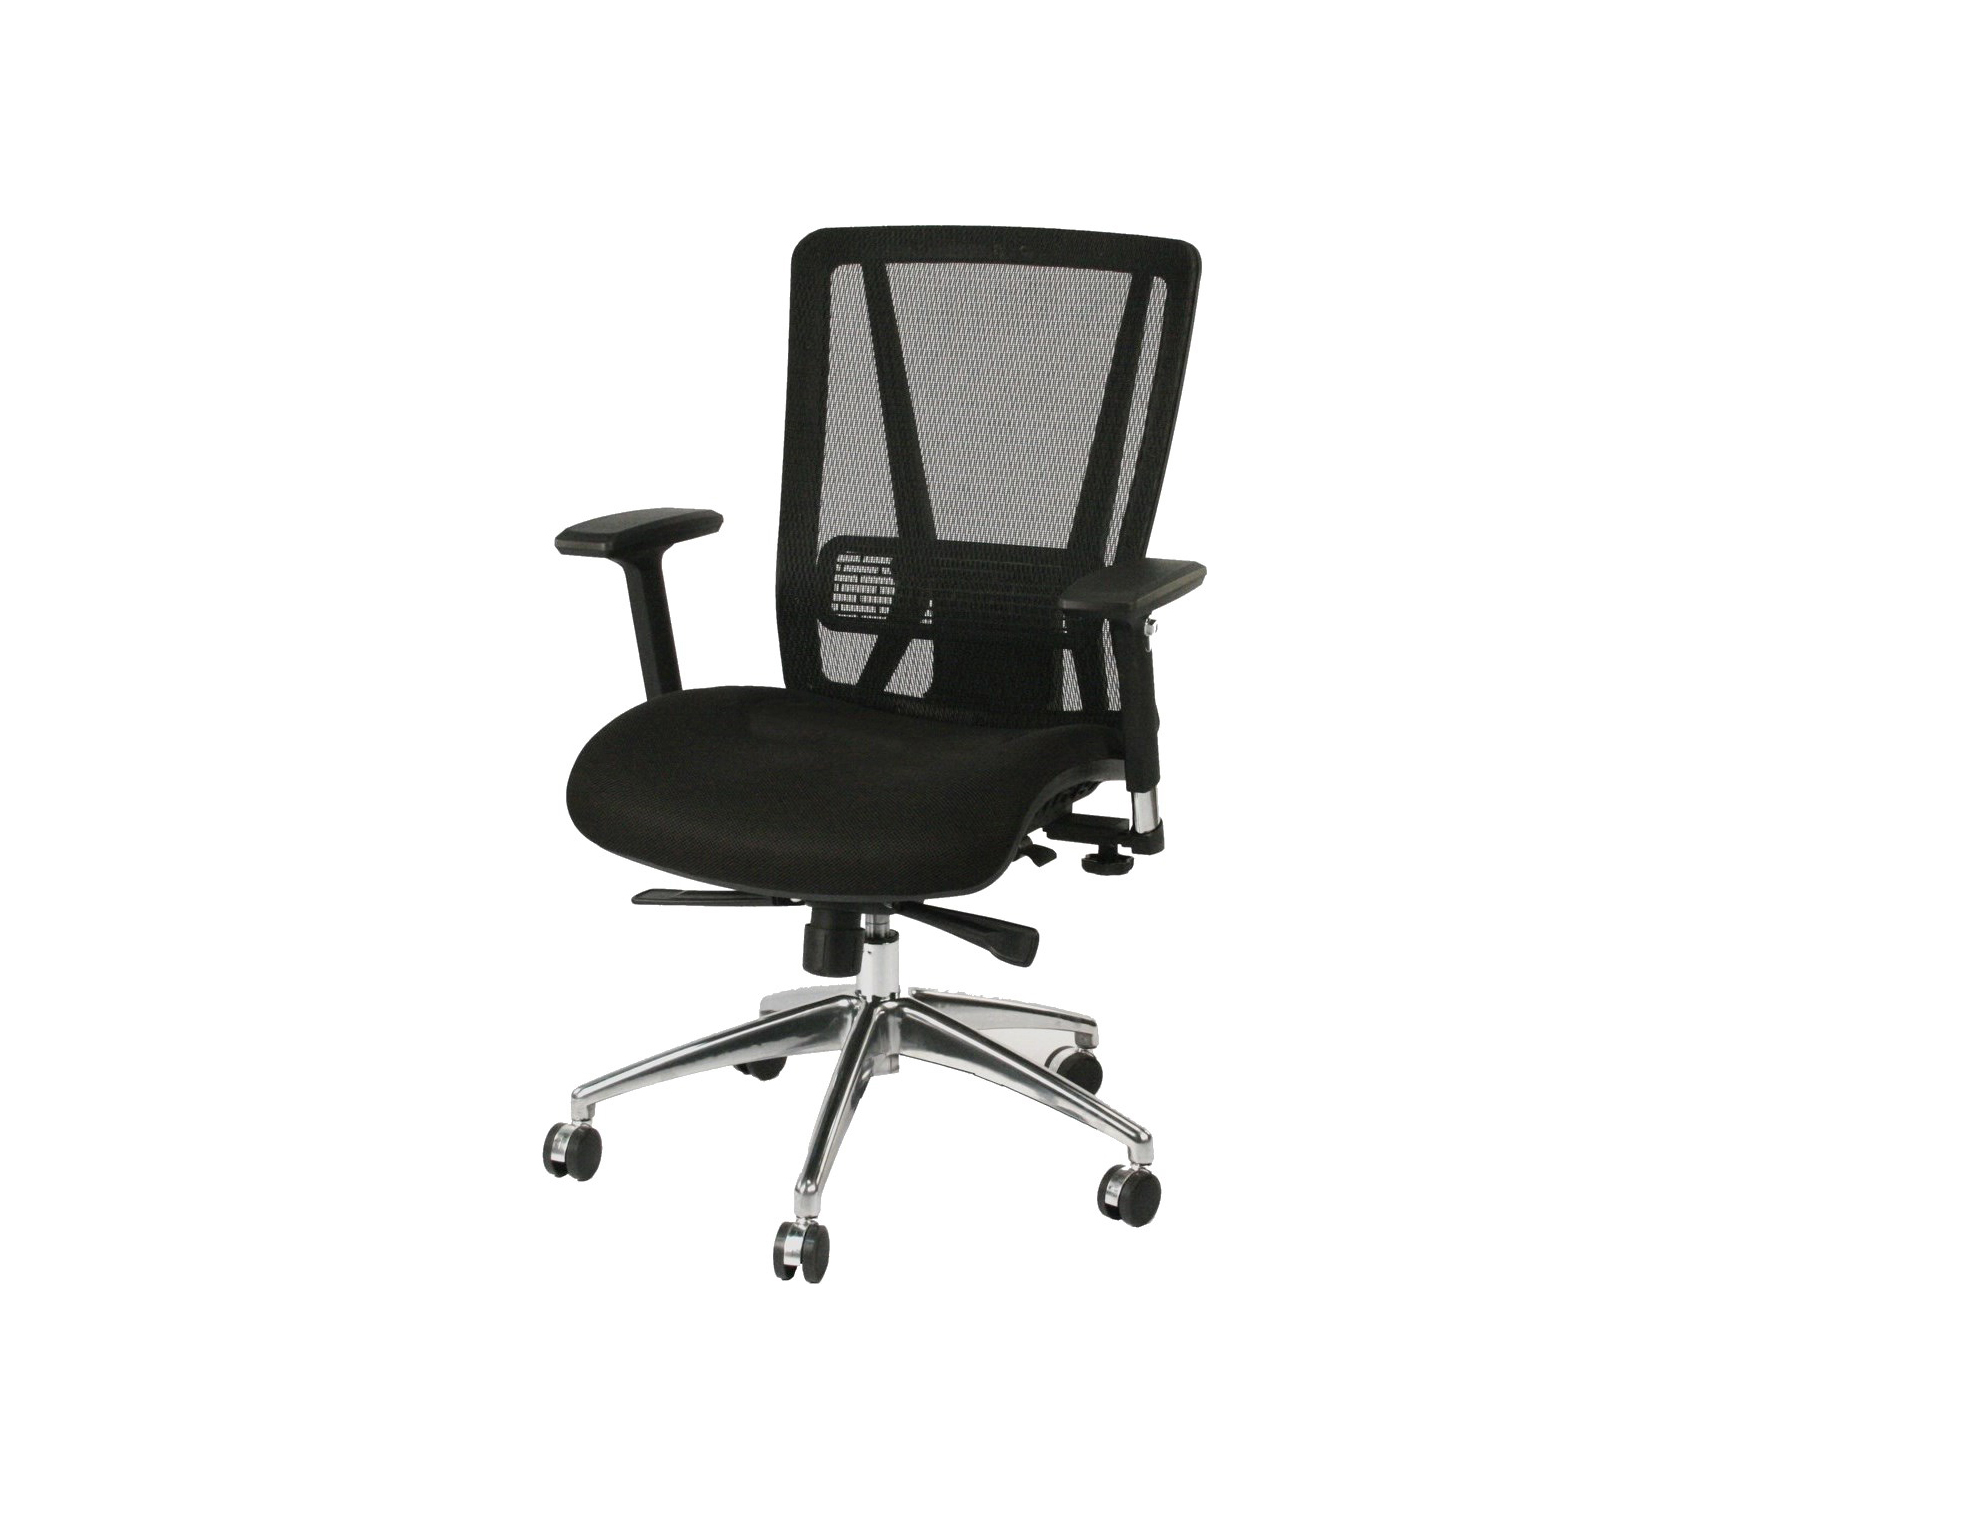 houston office chairs x rocker gaming chair cords savvi commercial furniture new ergonomic and task seating